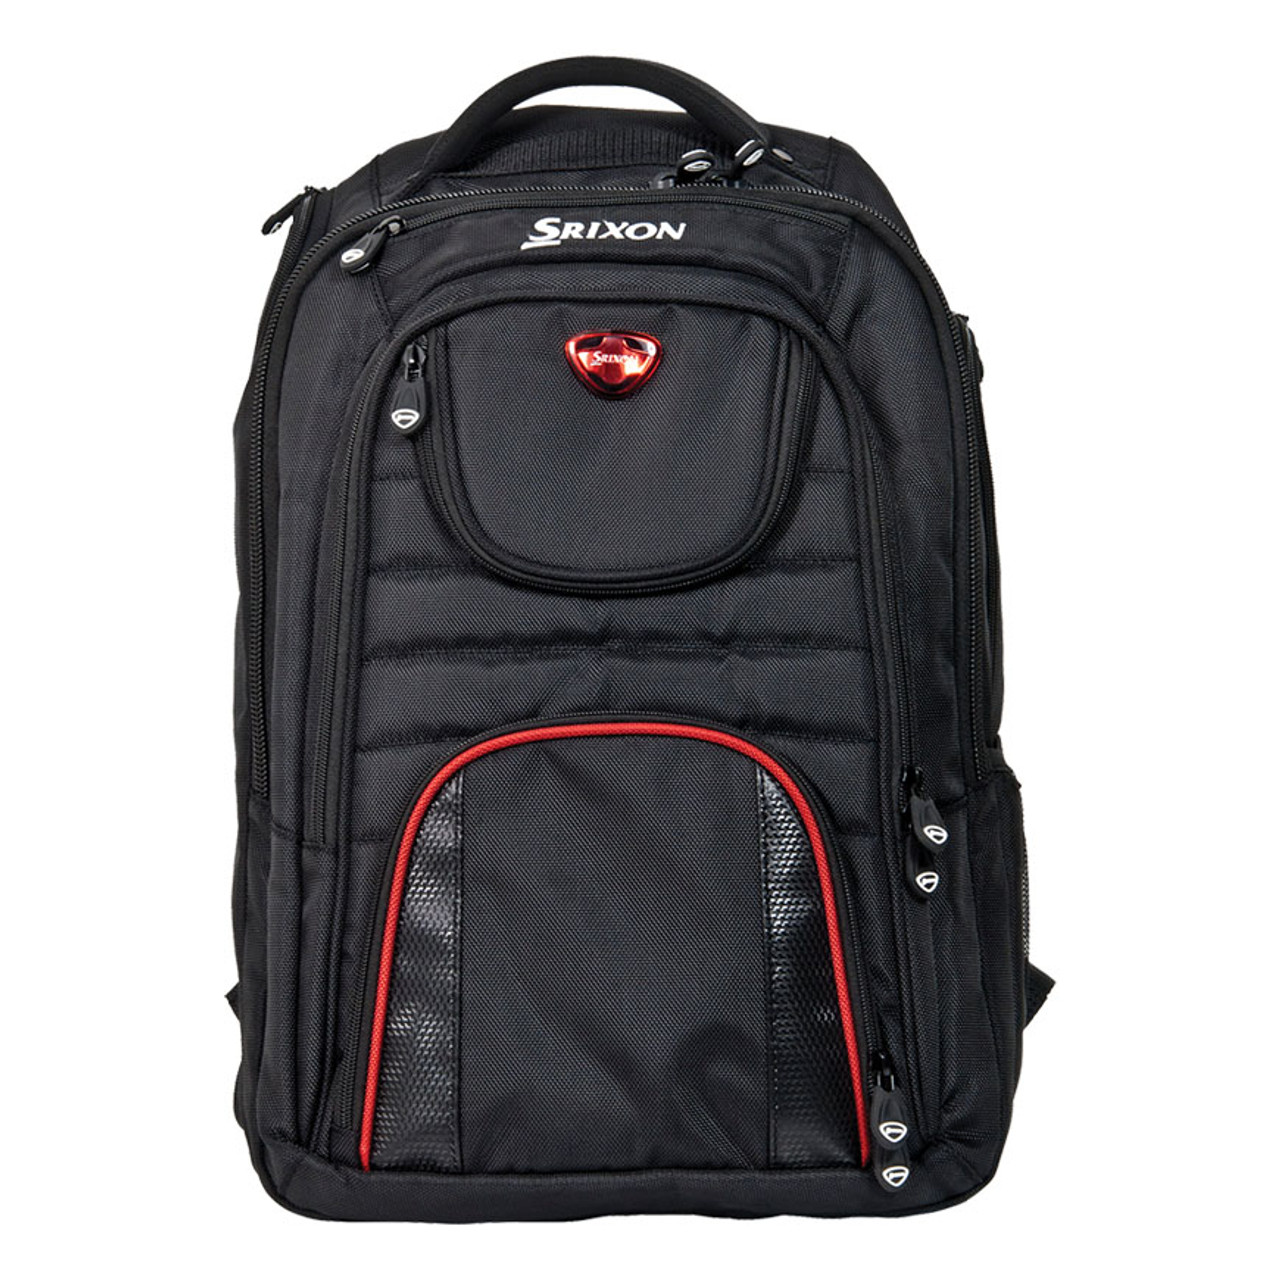 Srixon Golf Backpack